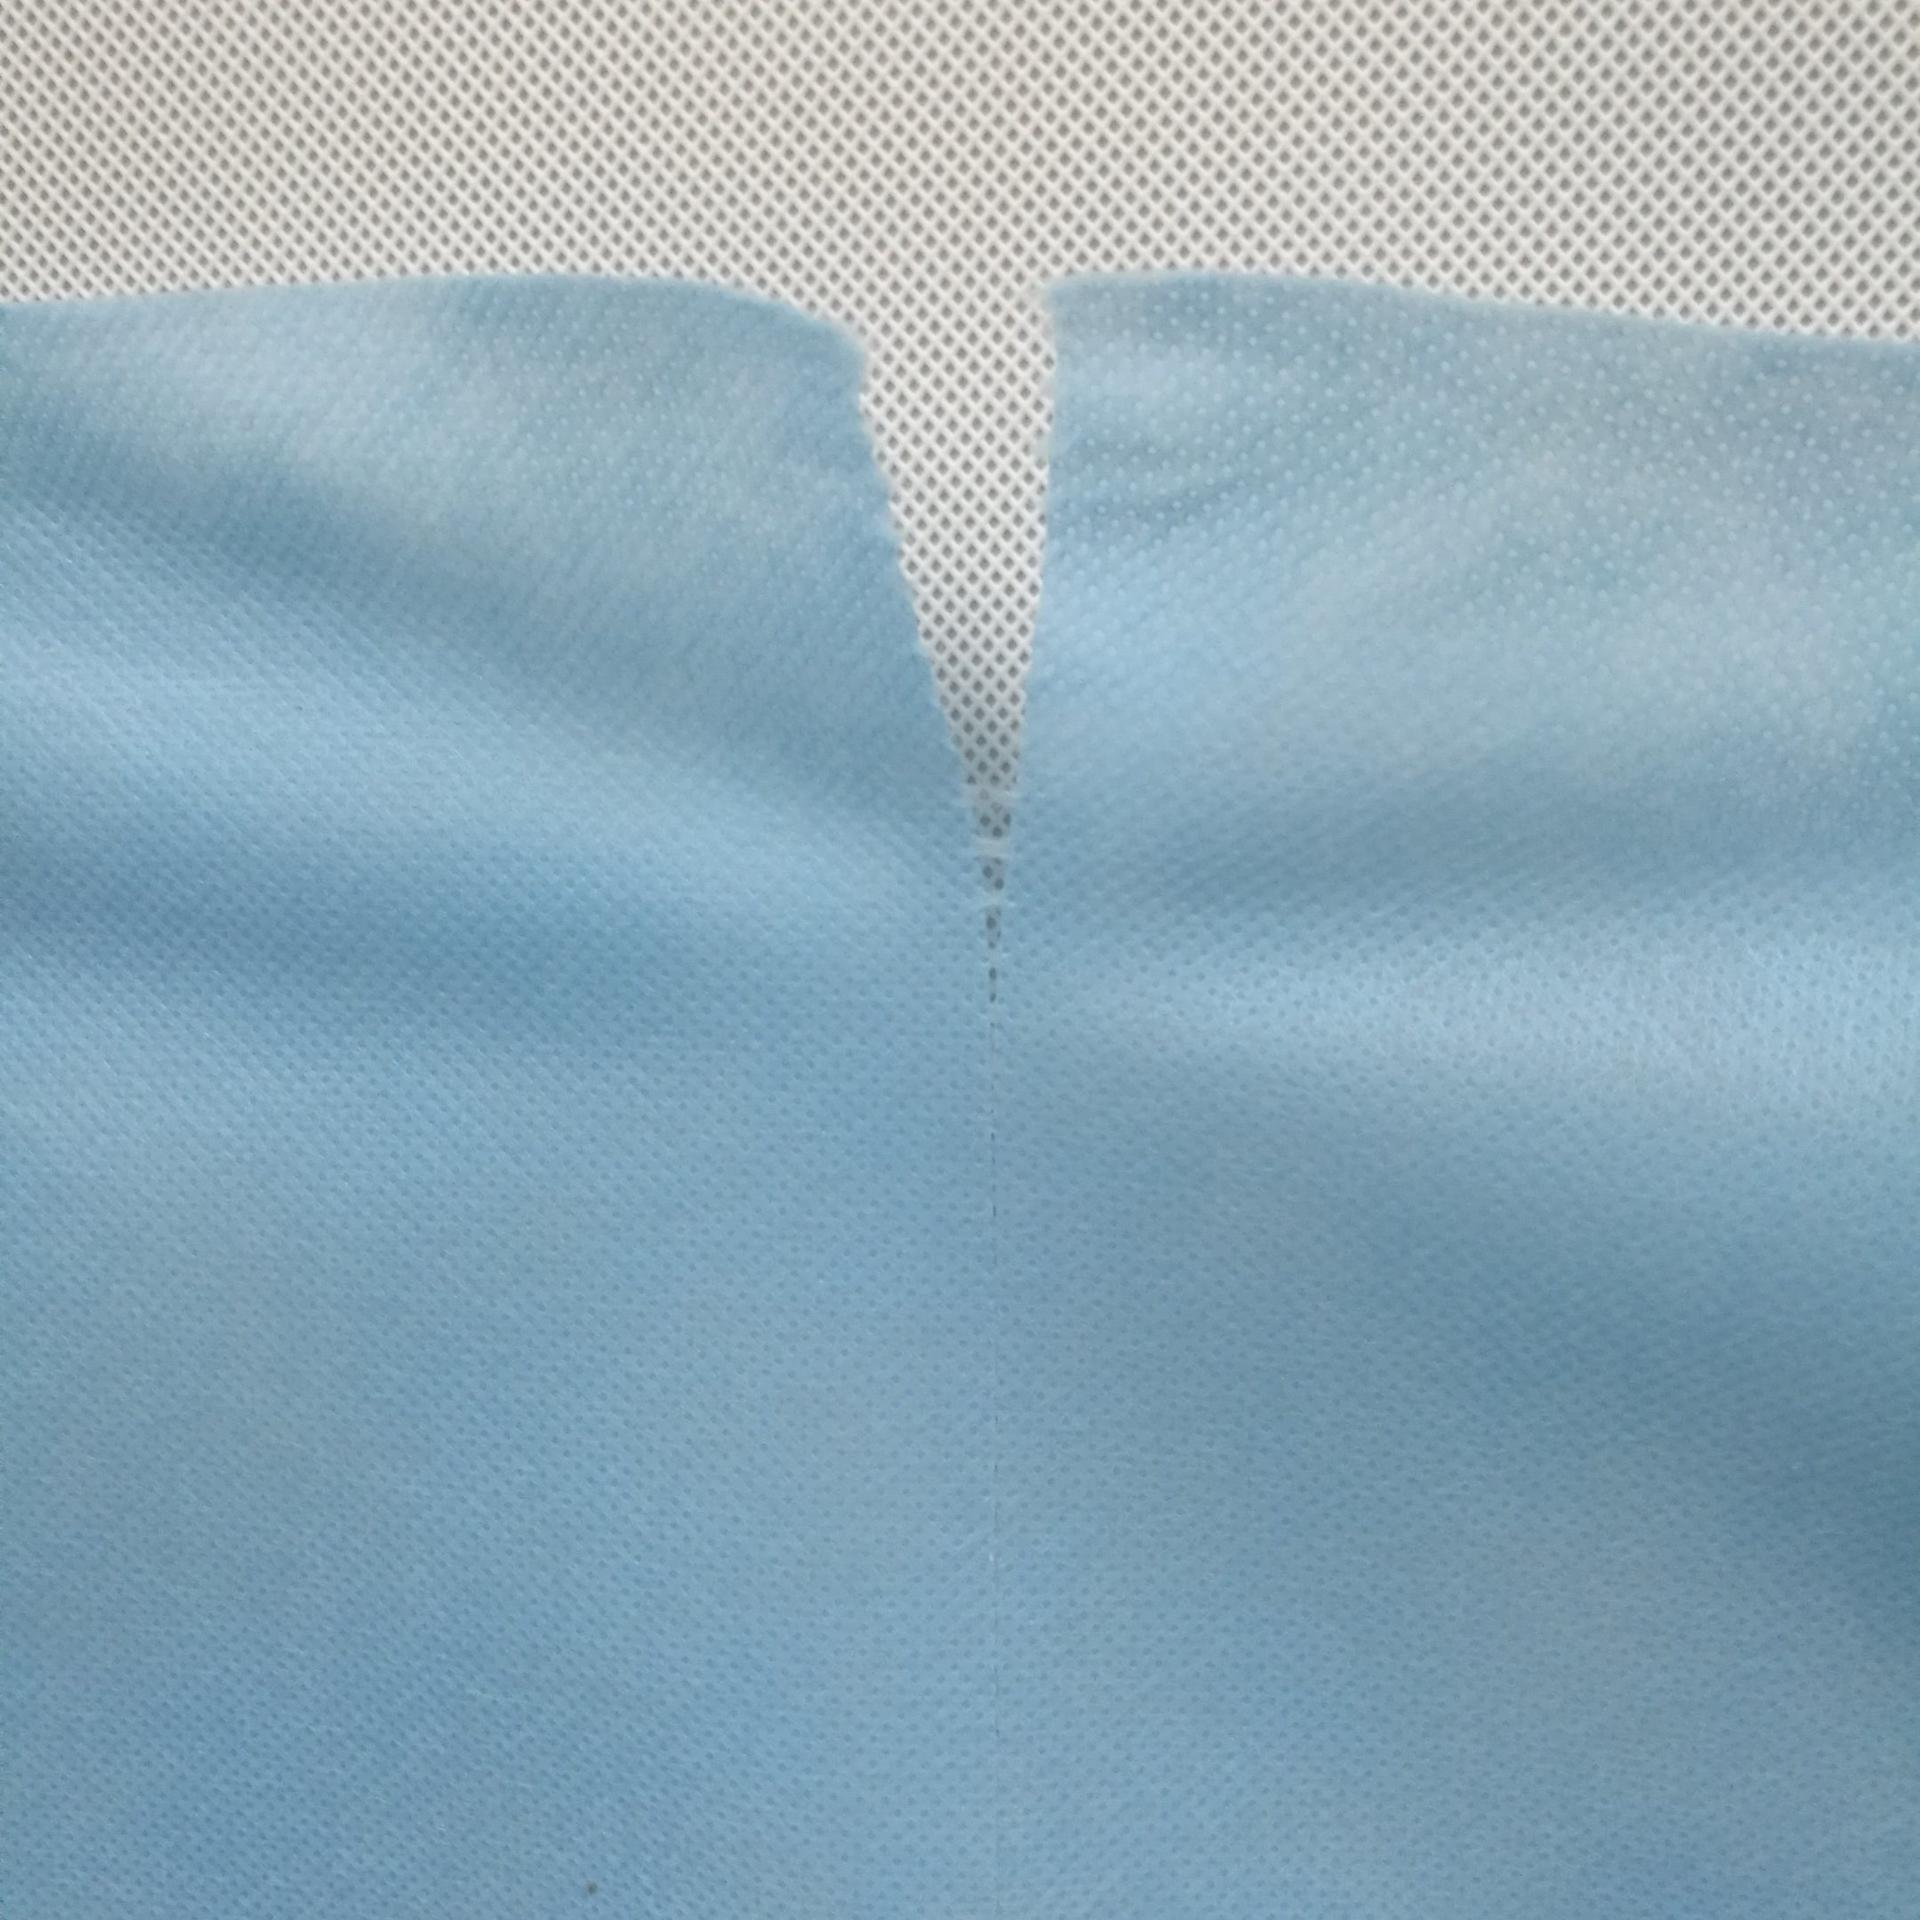 Spunbonded Nonwoven Fabric with Preforated